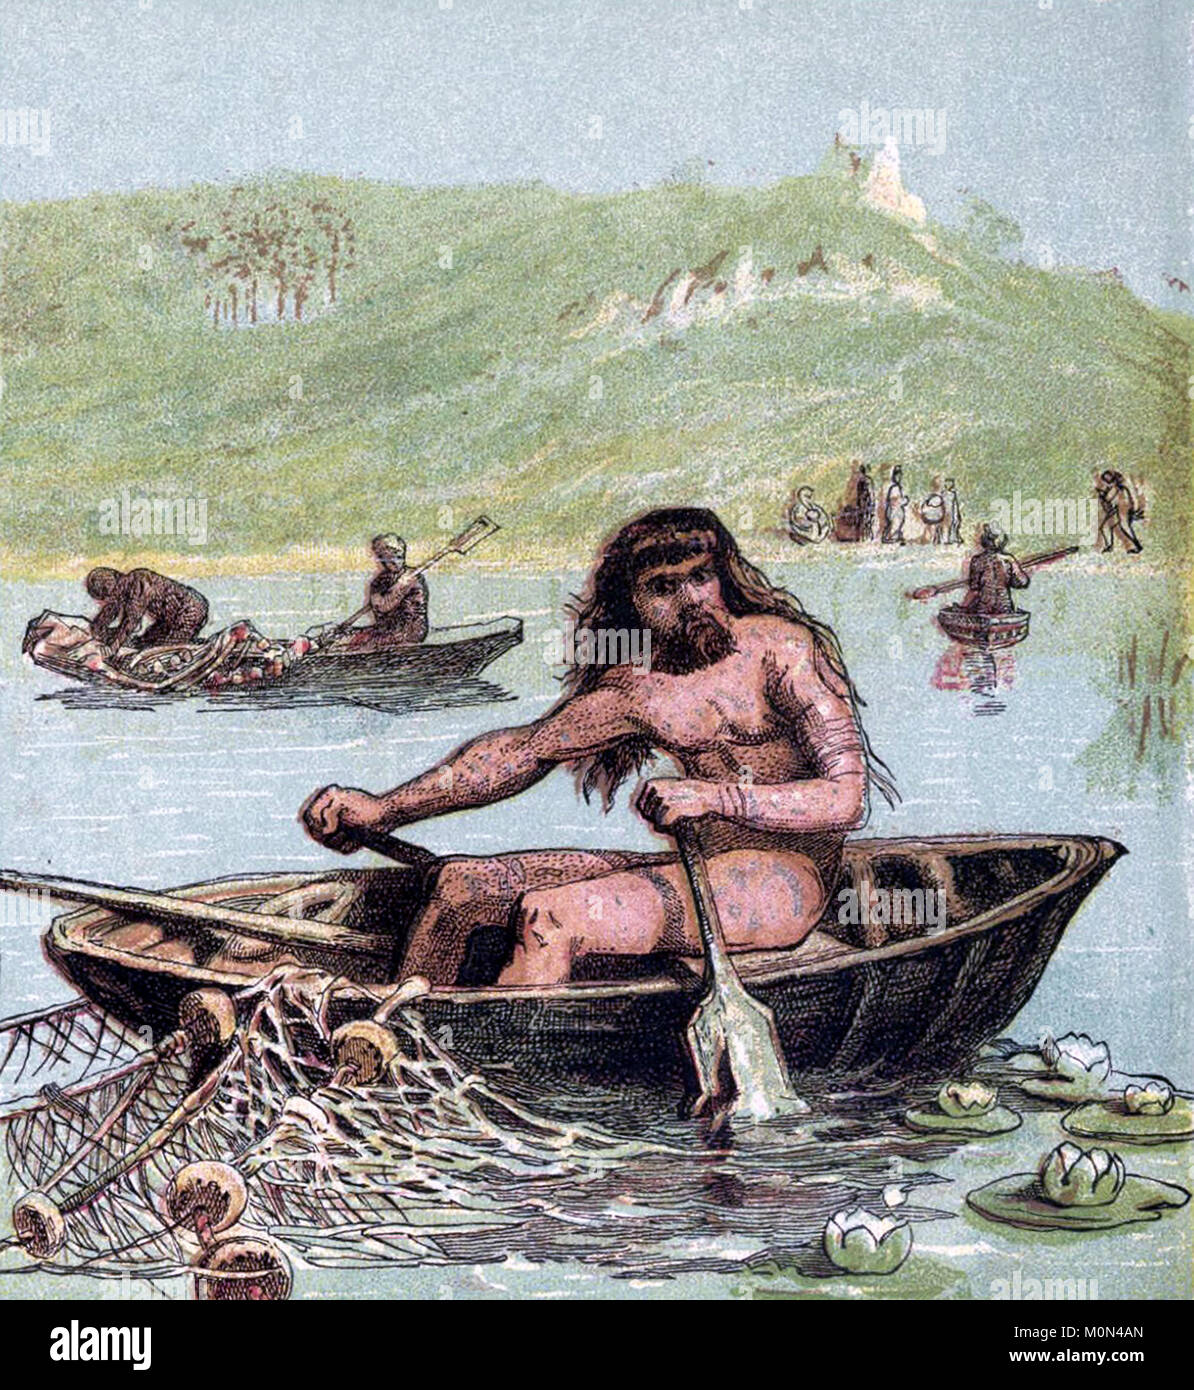 Ancient Briton fishing from a coracle. Illustration from a book published in 1868 - Stock Image